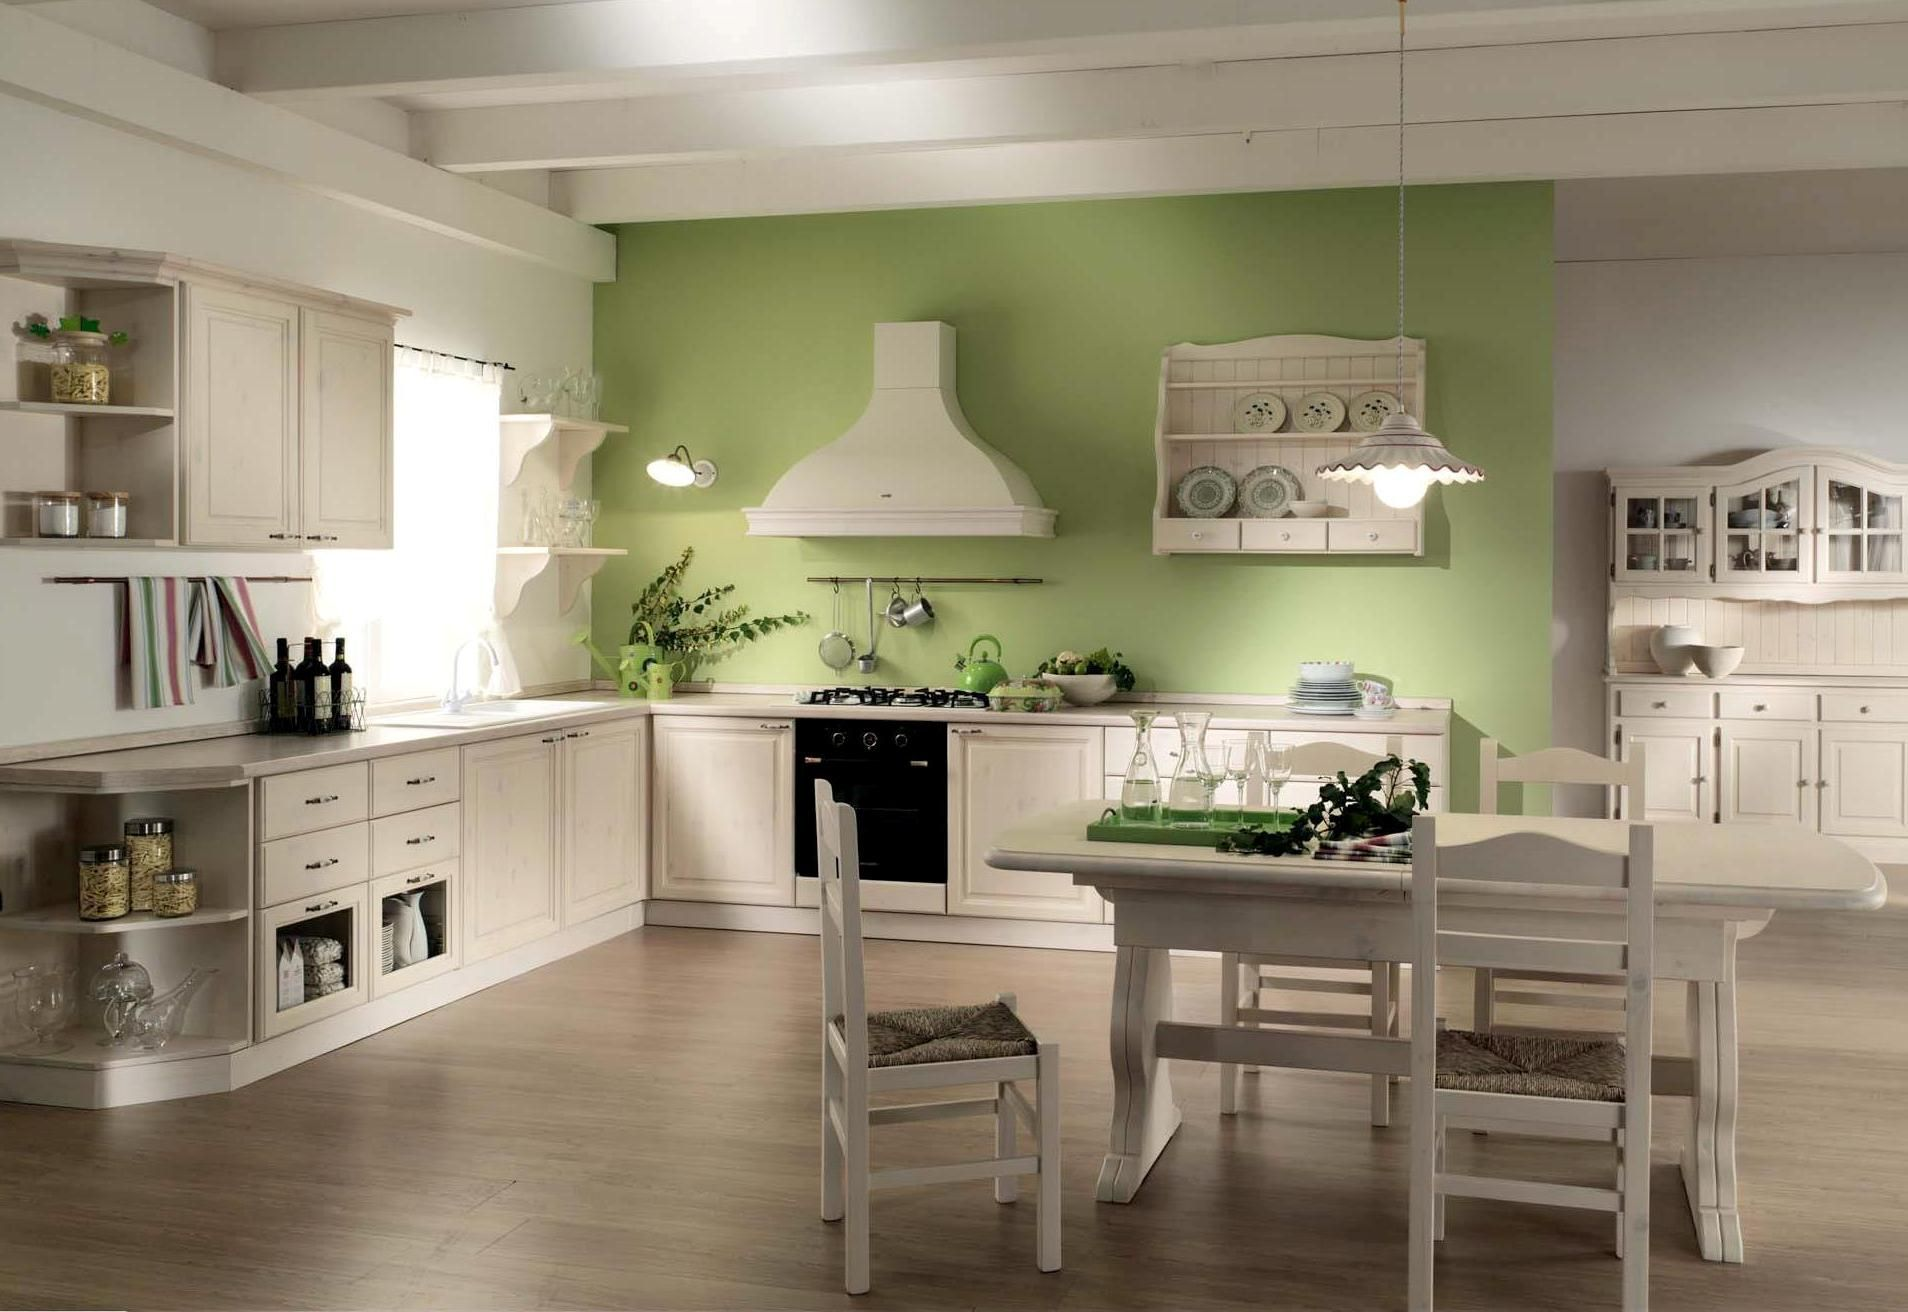 www.mobilificiomaieron.it - 0433775330. Cucina in legno massello di ...